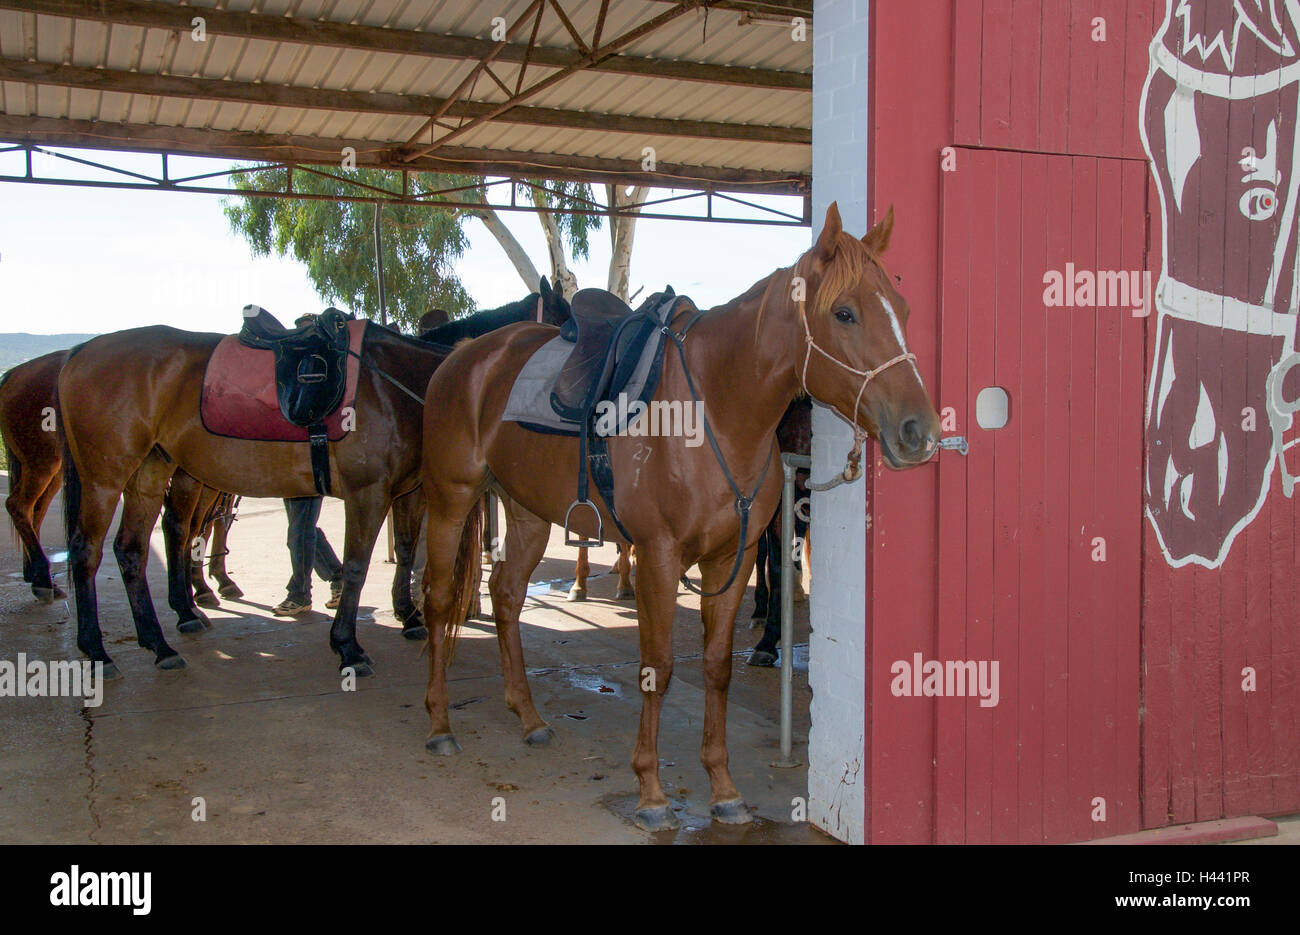 Barn with saddled chestnut brown horses in the open stall ...